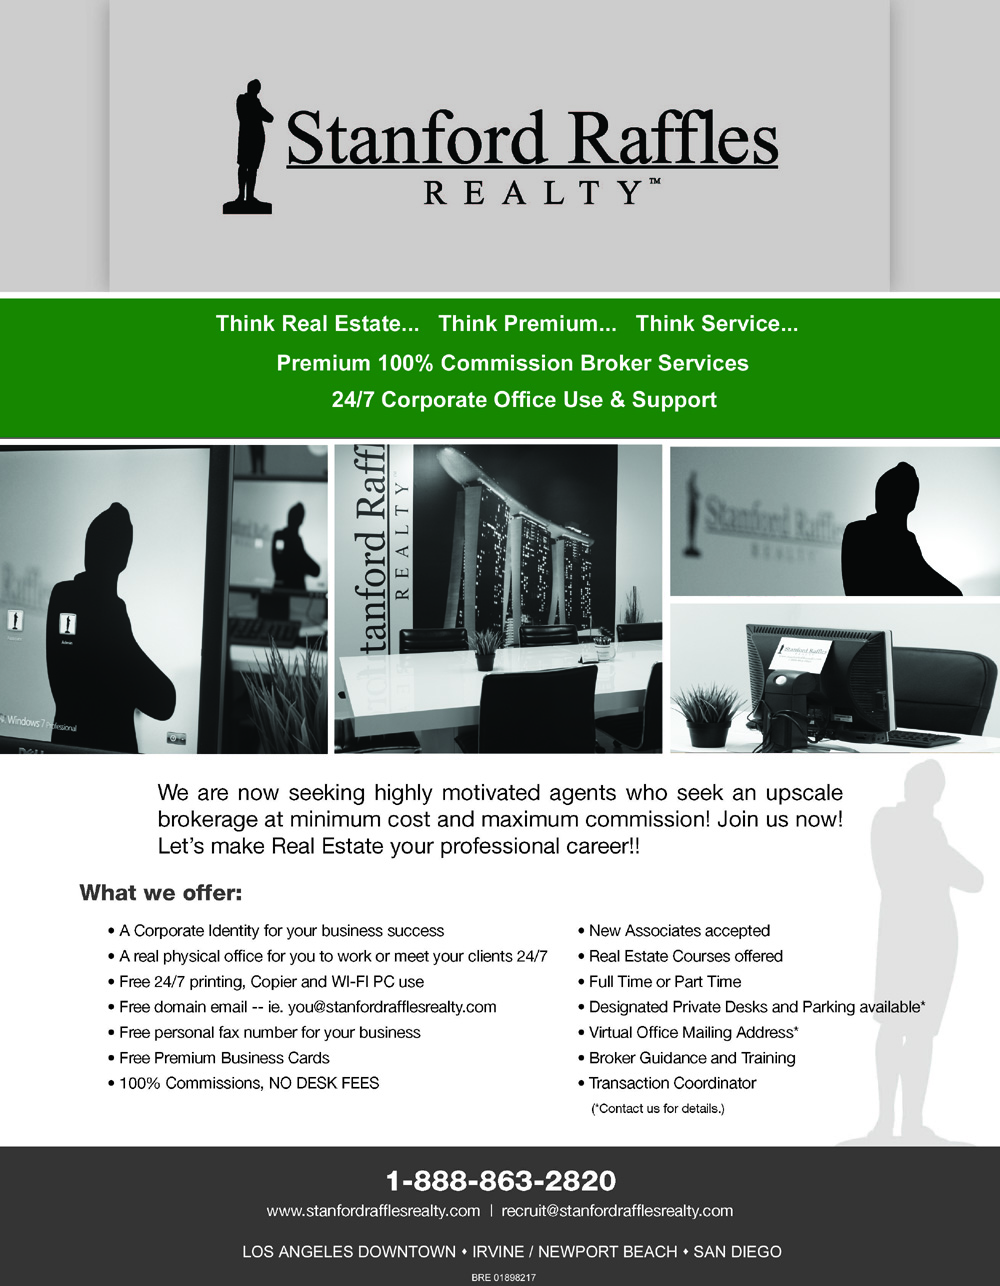 Stanford Raffles Realty - 100% Commissions Brokerage